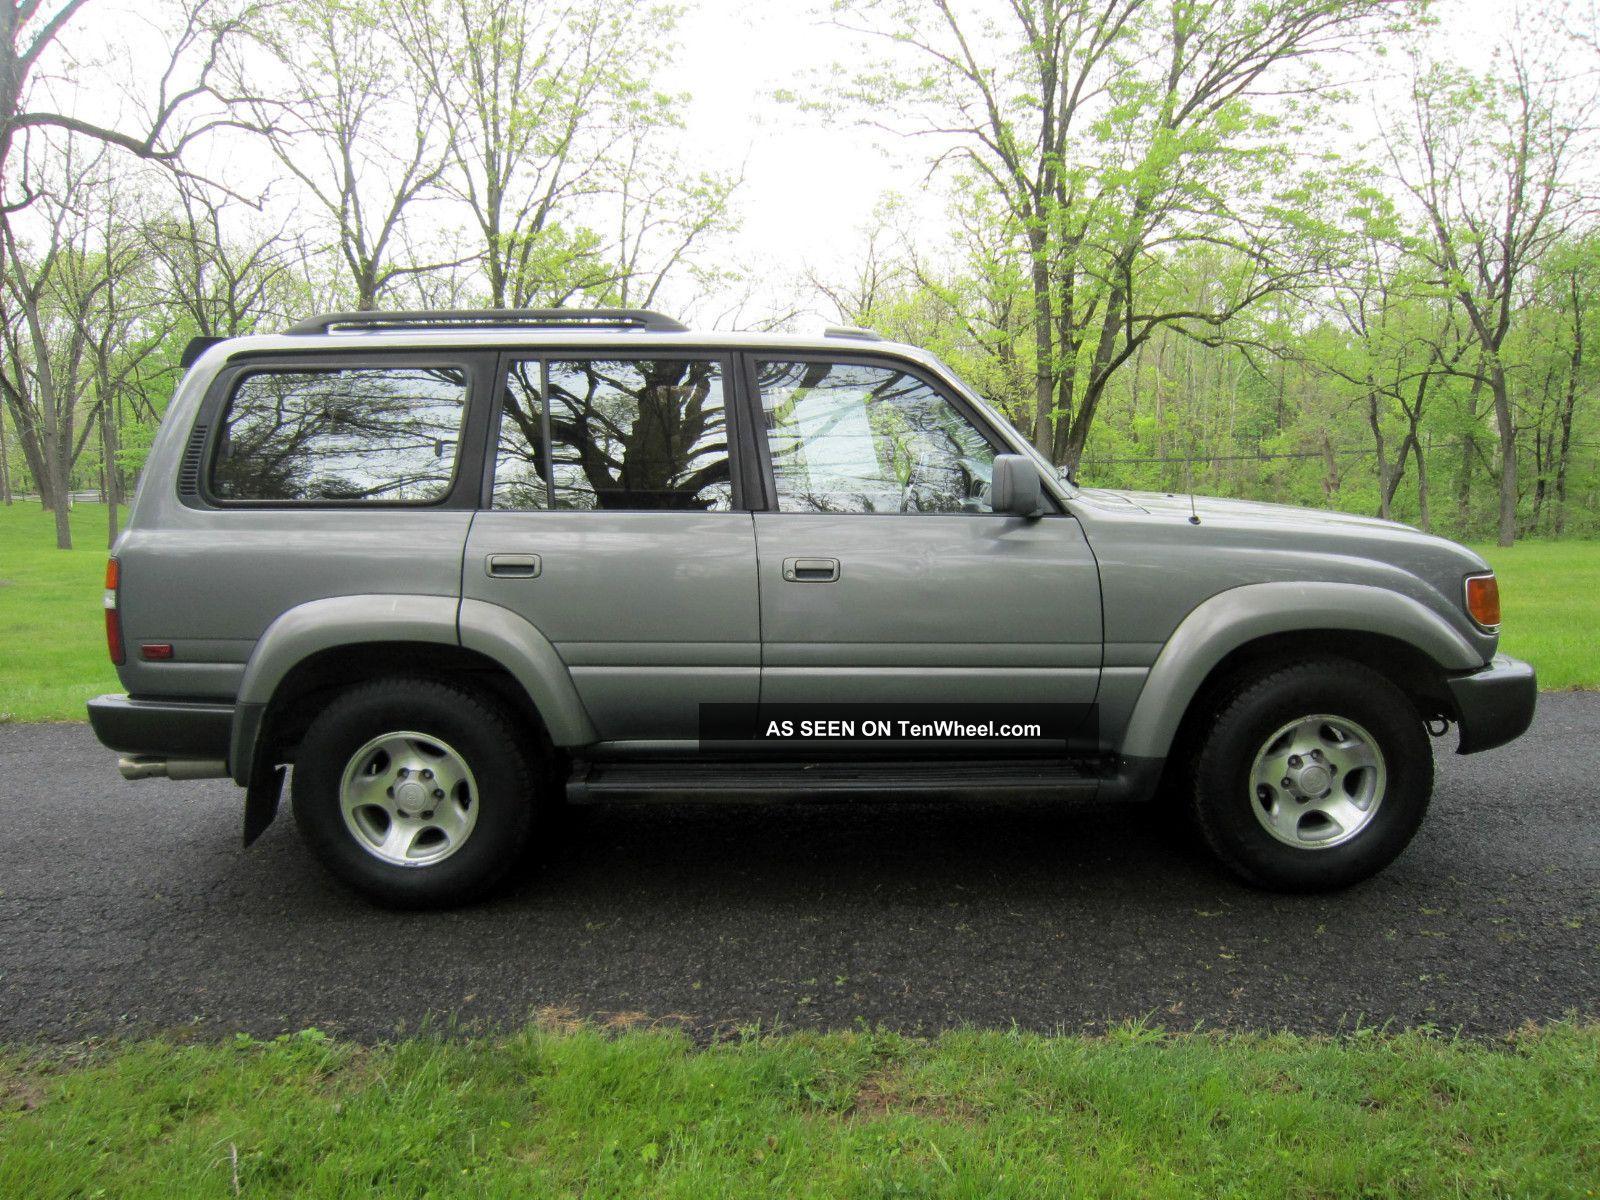 1995 toyota land cruiser supercharged with 4x4 and 3 rows of seats. Black Bedroom Furniture Sets. Home Design Ideas